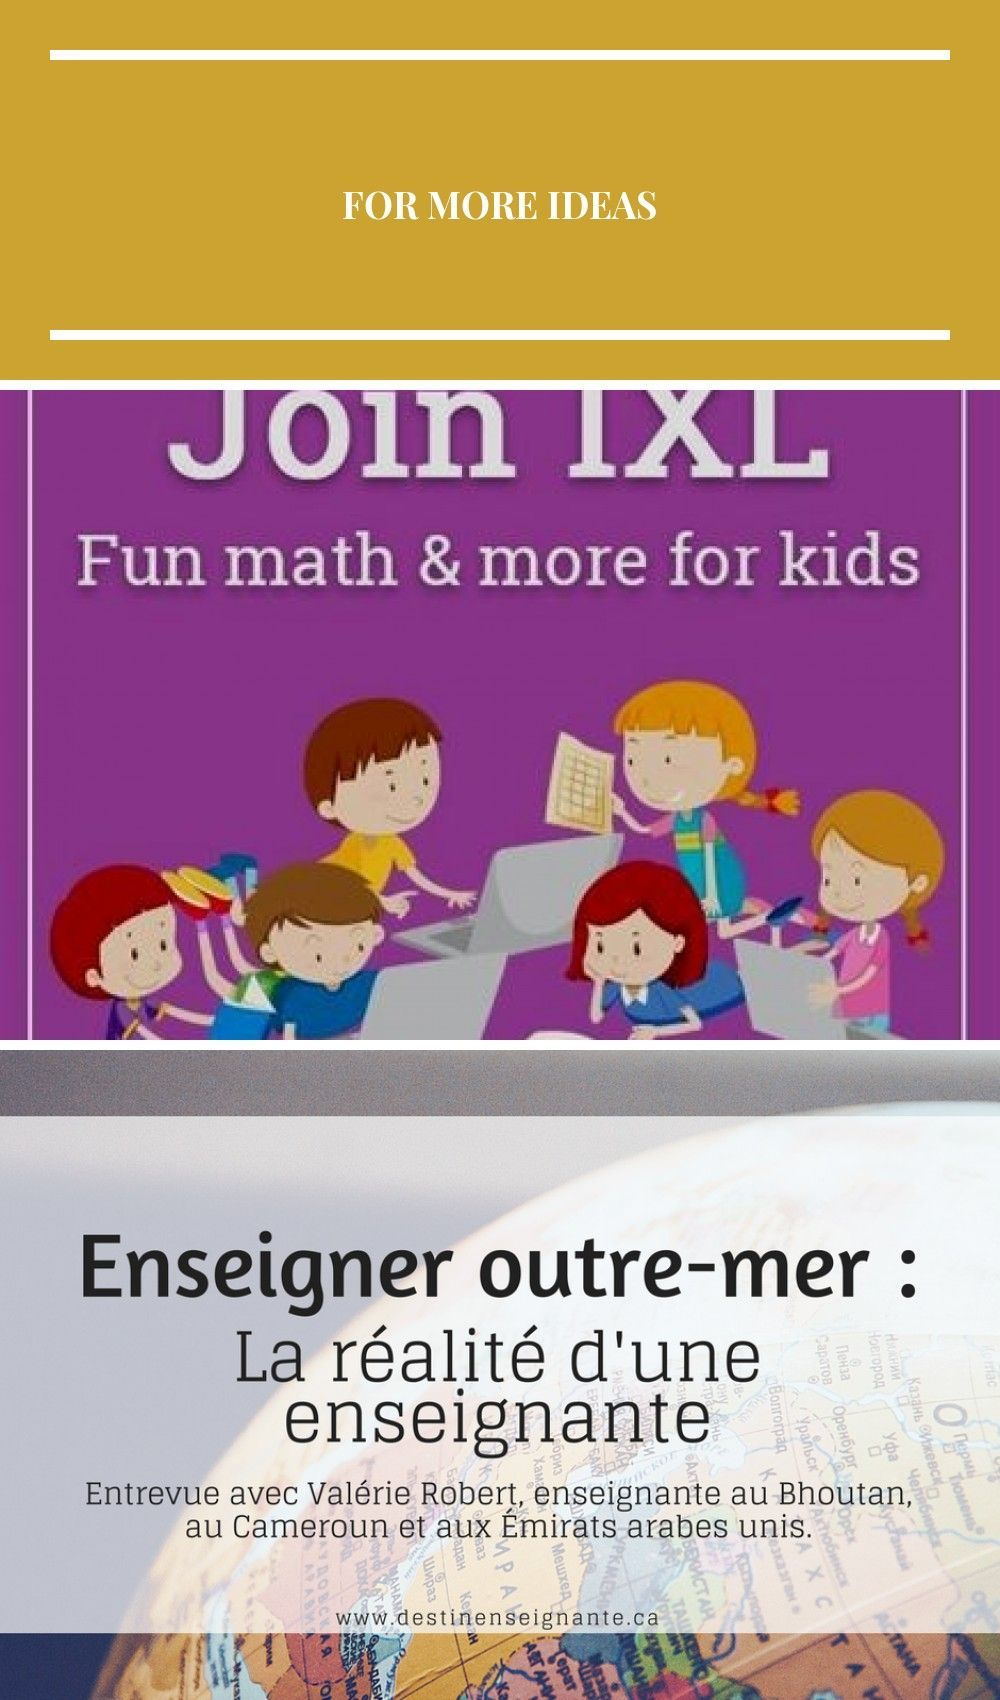 #homeschooling problems,  homeschooling 1 child,  virtual homeschooling free,  homeschooling advantages pdf,  best homeschooling christian curriculum,  homeschooling #education certificate,  homeschooling mn requirements to vote,  homeschooling family bonding stats calculator free,  homeschooling resources nzt drugs. Ressources pour Enseignants IXLFun online math & more on IXL.com! #bondingwithchild #homeschooling problems,  homeschooling 1 child,  virtual homeschooling free,  homeschooling adva #bondingwithchild